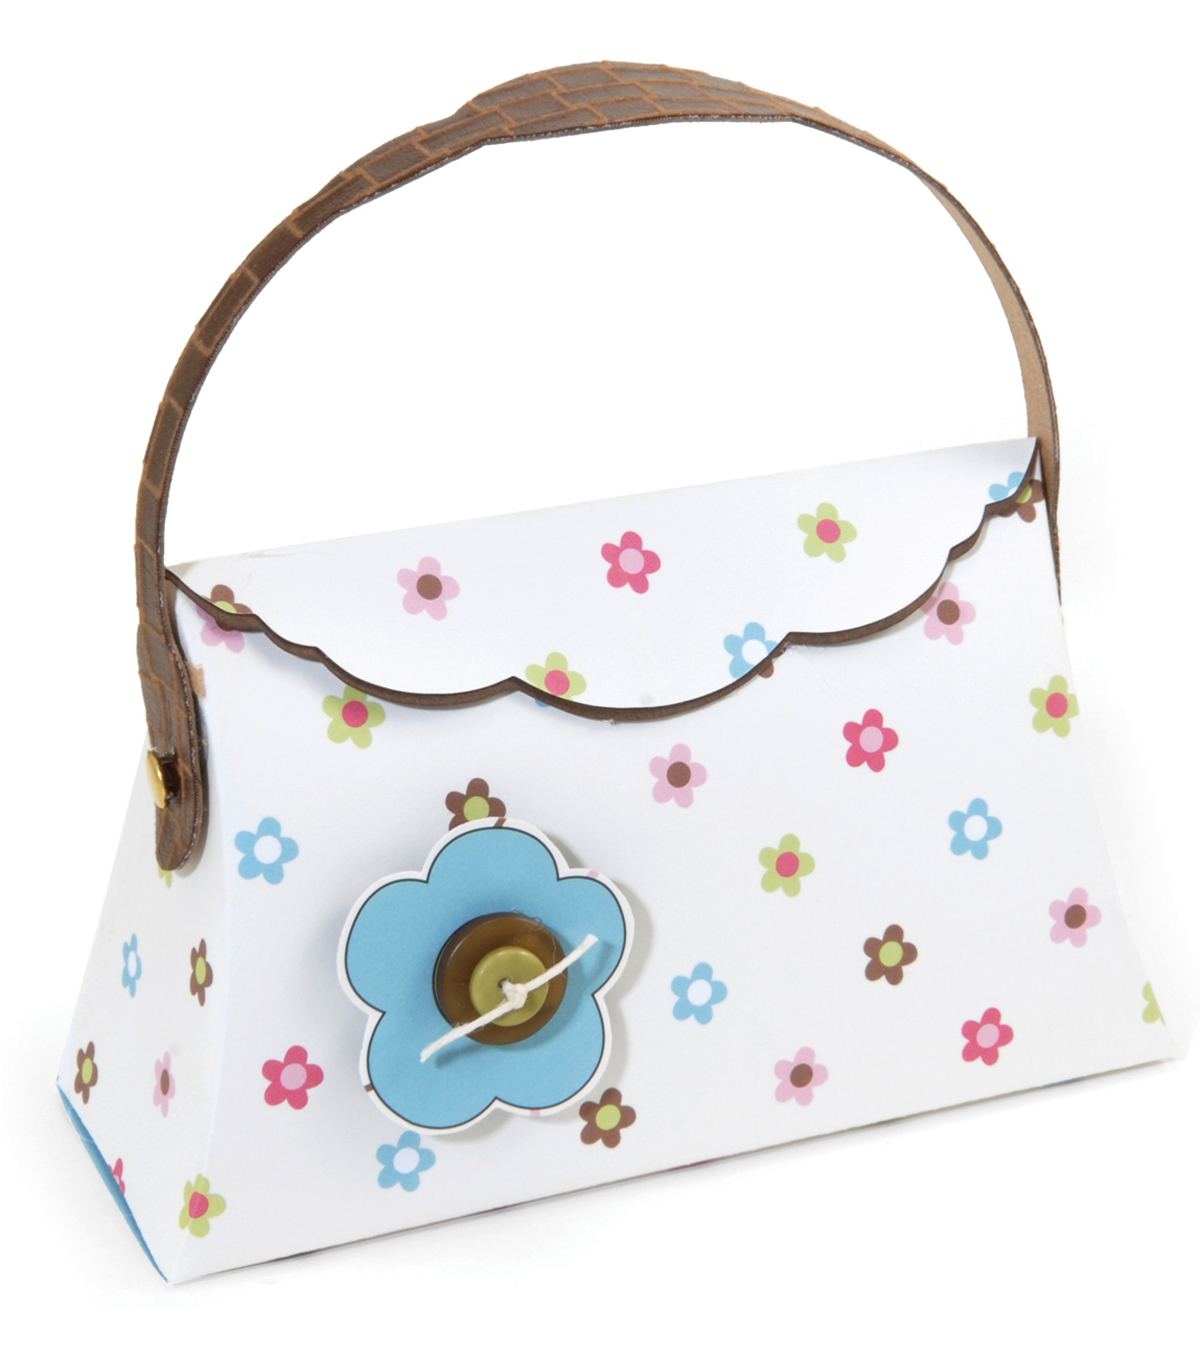 Sizzix Big Shot Pro Die-Pillow Purse